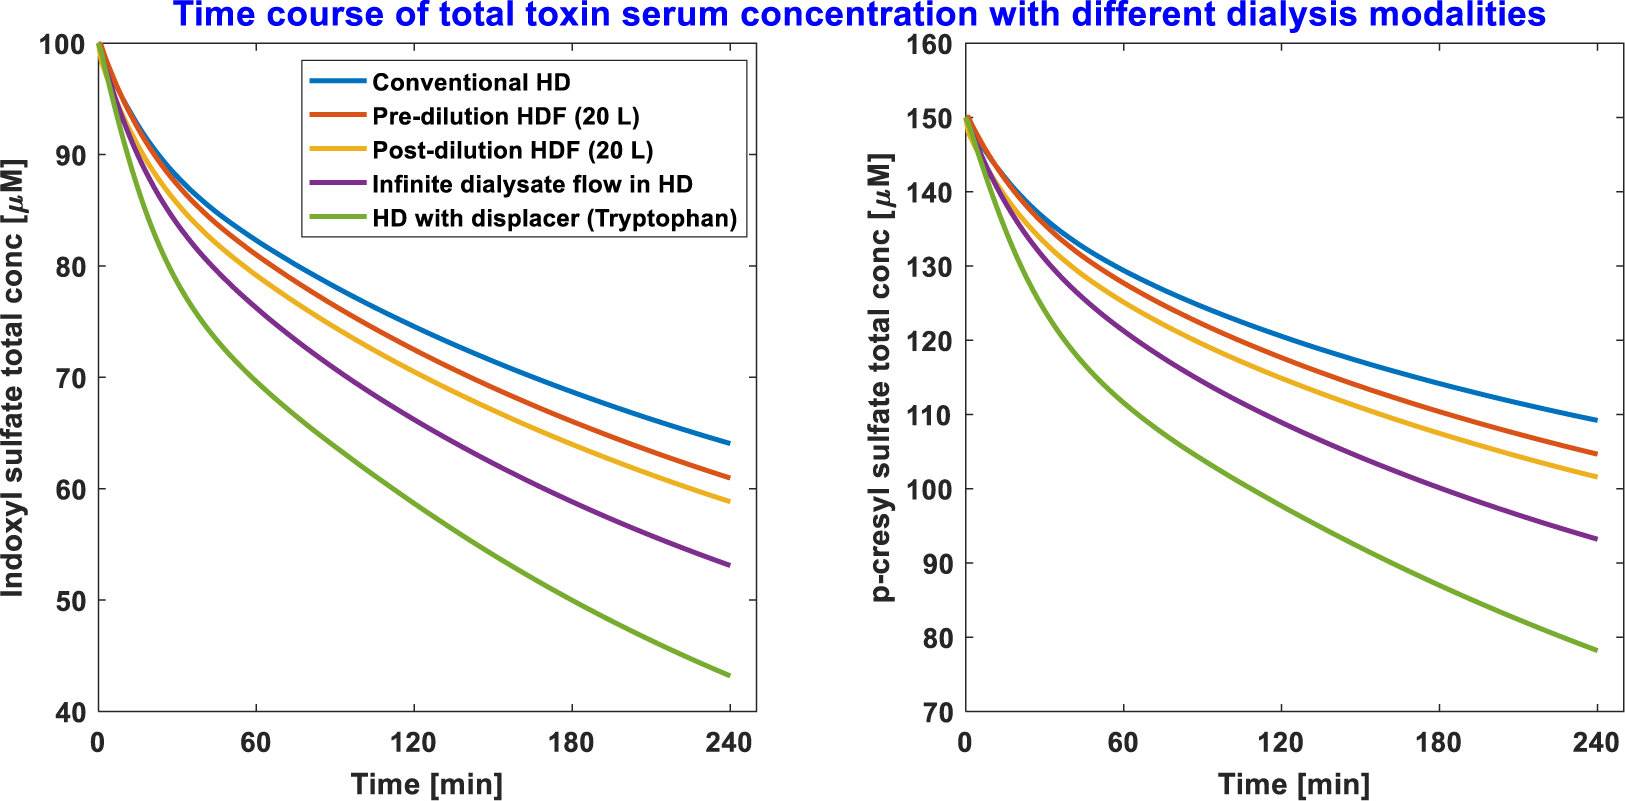 In silico comparison of protein-bound uremic toxin removal